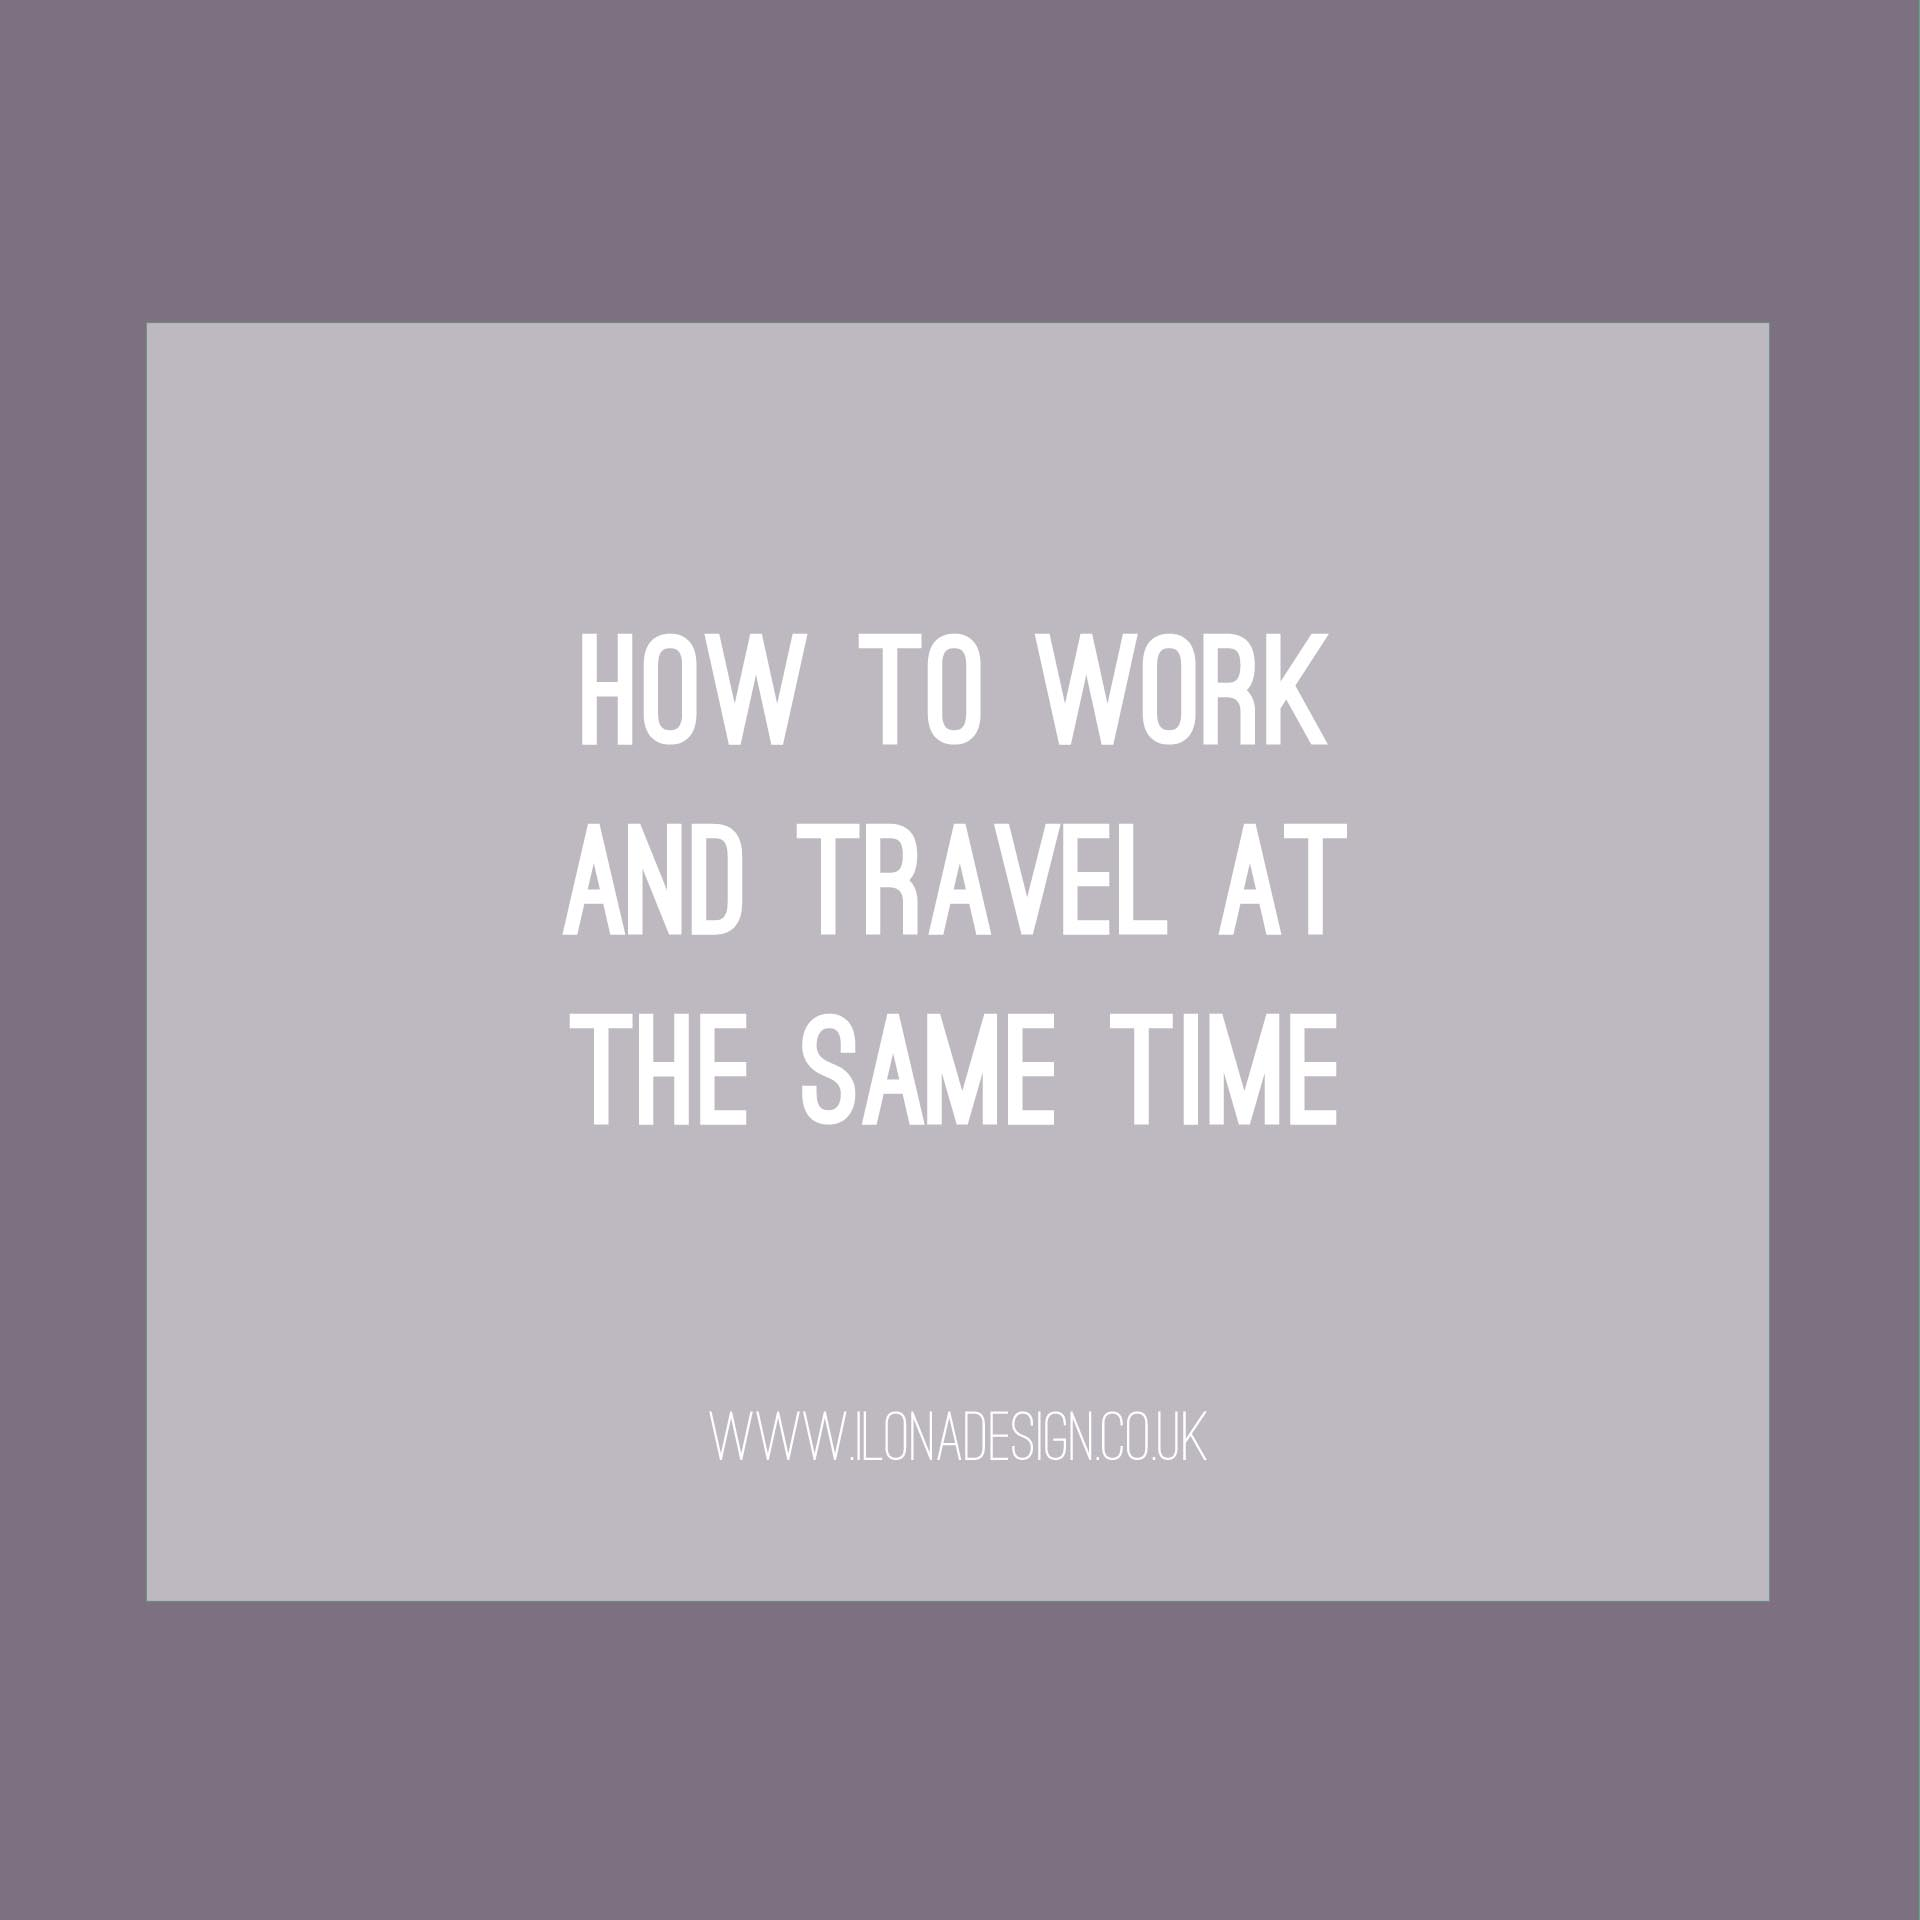 How to work and travel at the same time